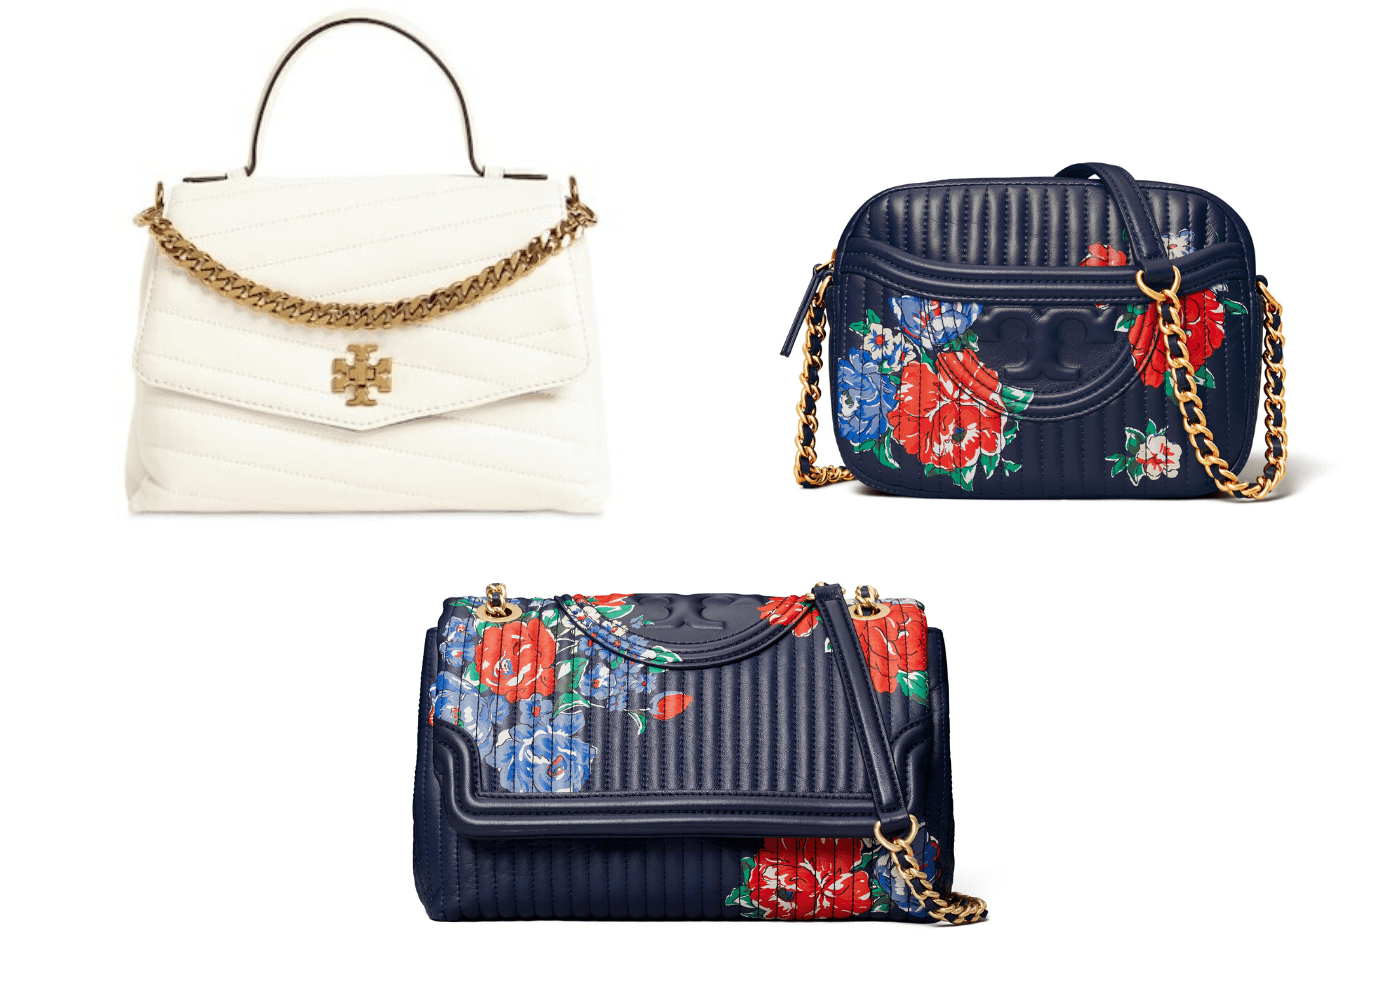 Spring Summer 2020 designer bags to shop online: Tory Burch Kira and Fleming